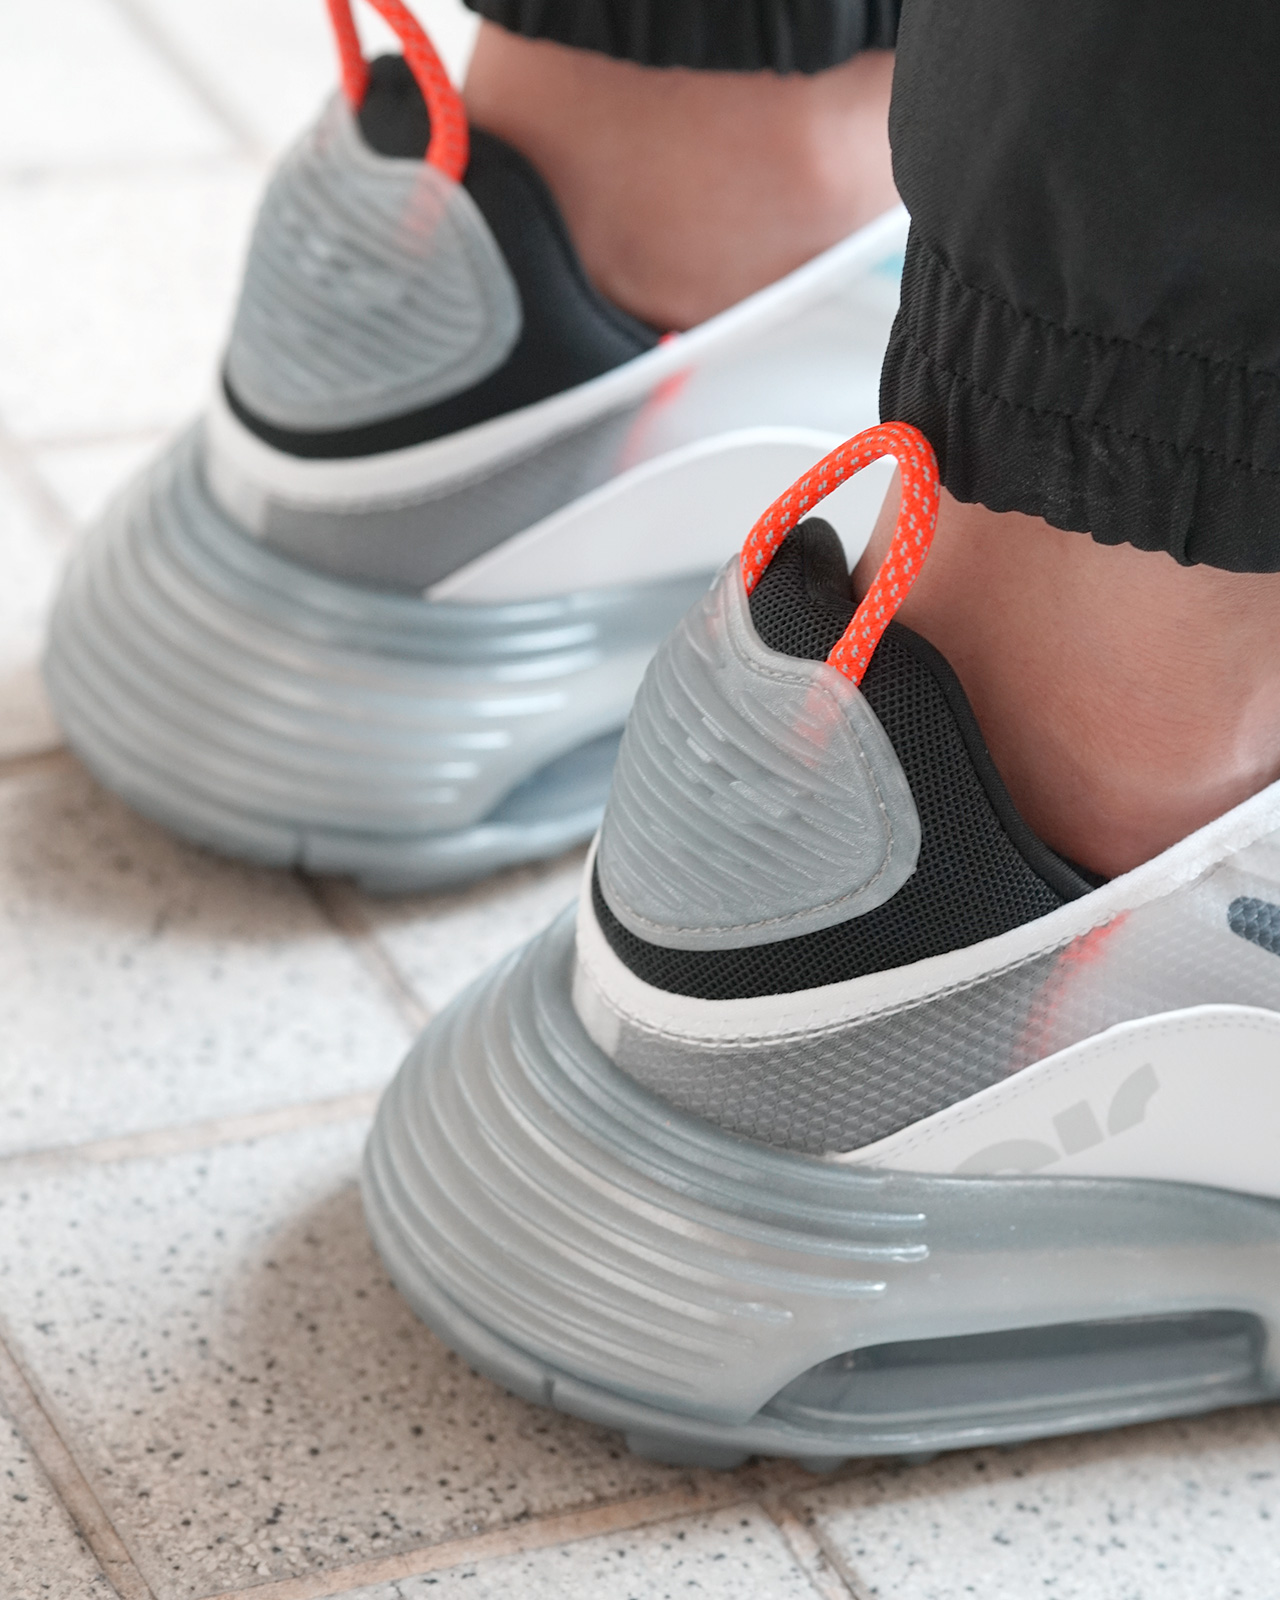 Nike Air Max 2090 review: Incredibly comfortable everyday sneakers